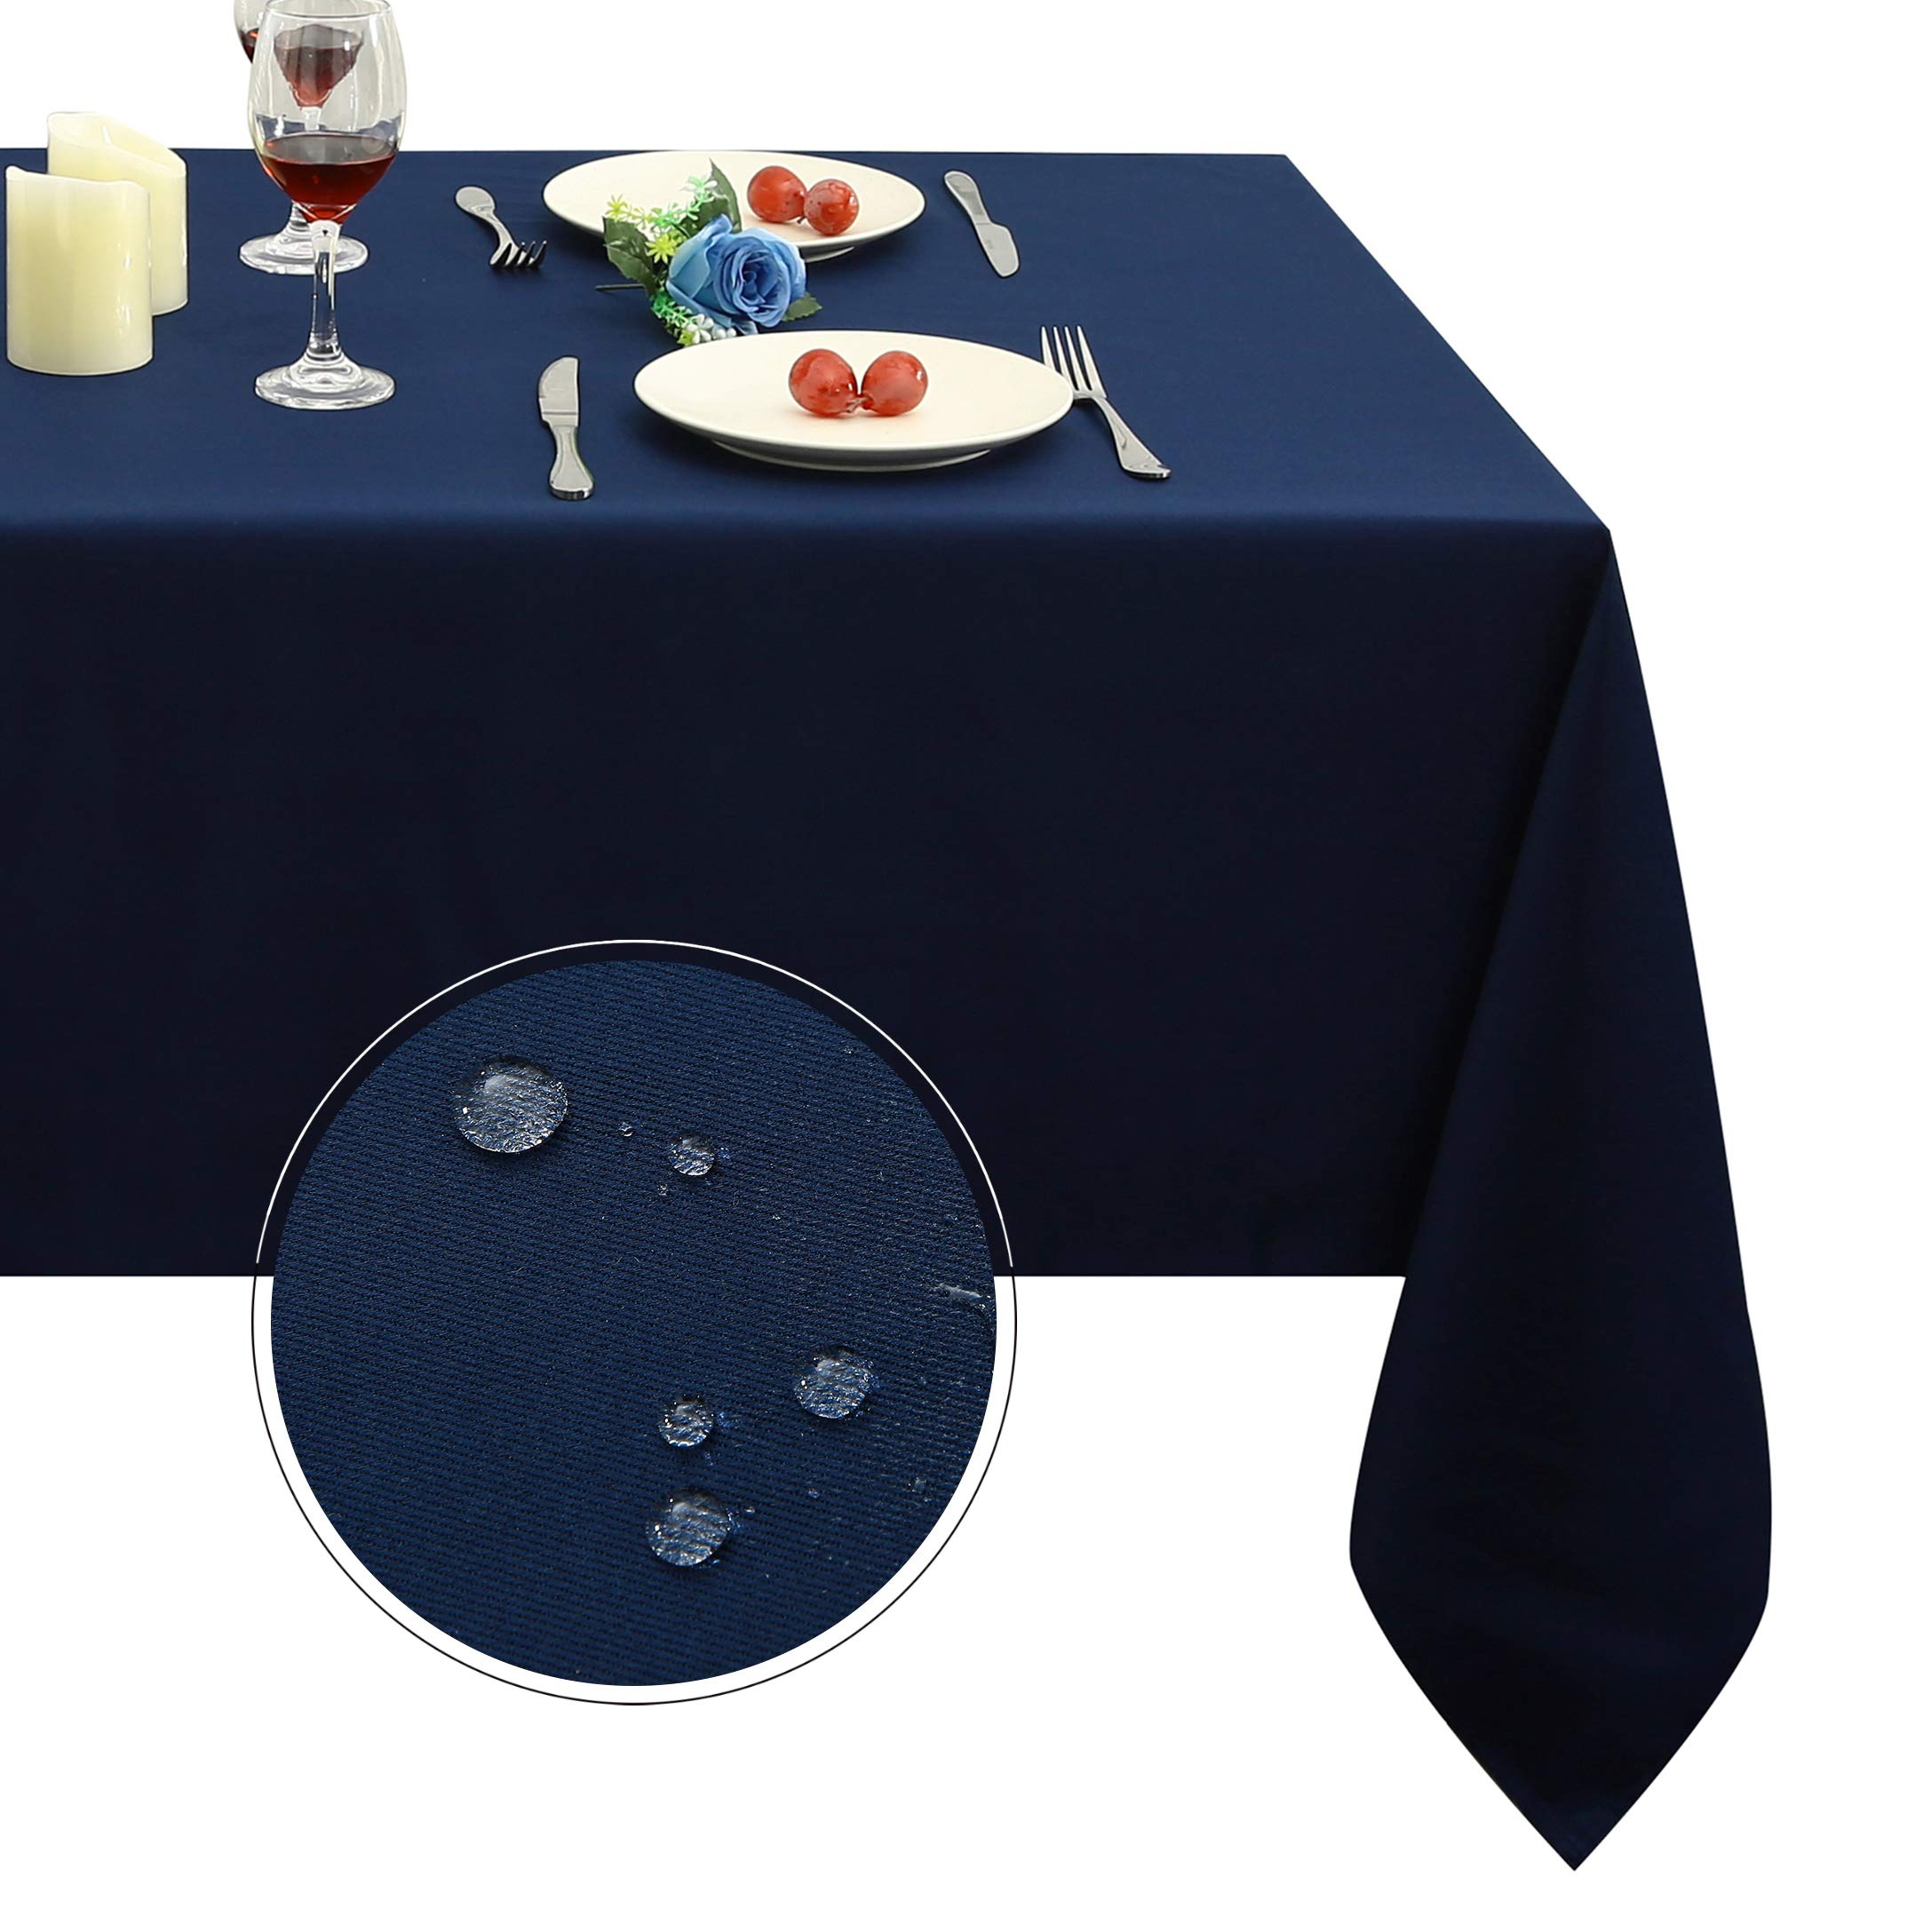 Obstal Rectangle Table Cloth, Oil-Proof Spill-Proof and Water Resistance Microfiber Tablecloth, Decorative Fabric Table Cover for Outdoor and Indoor Use (Navy Blue, 60 x 84 Inch) by Obstal